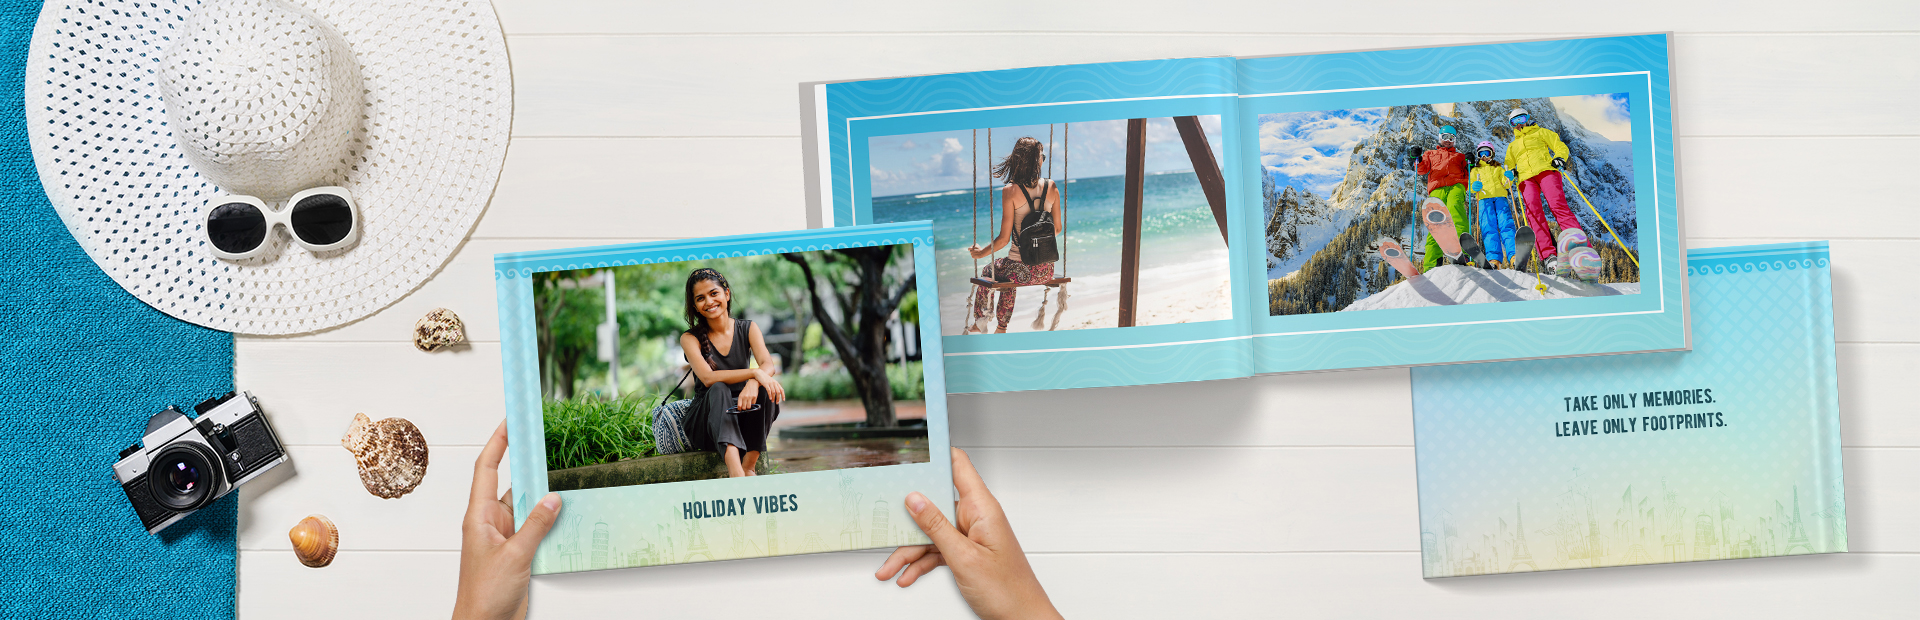 Holiday Hues Photo Book Printing